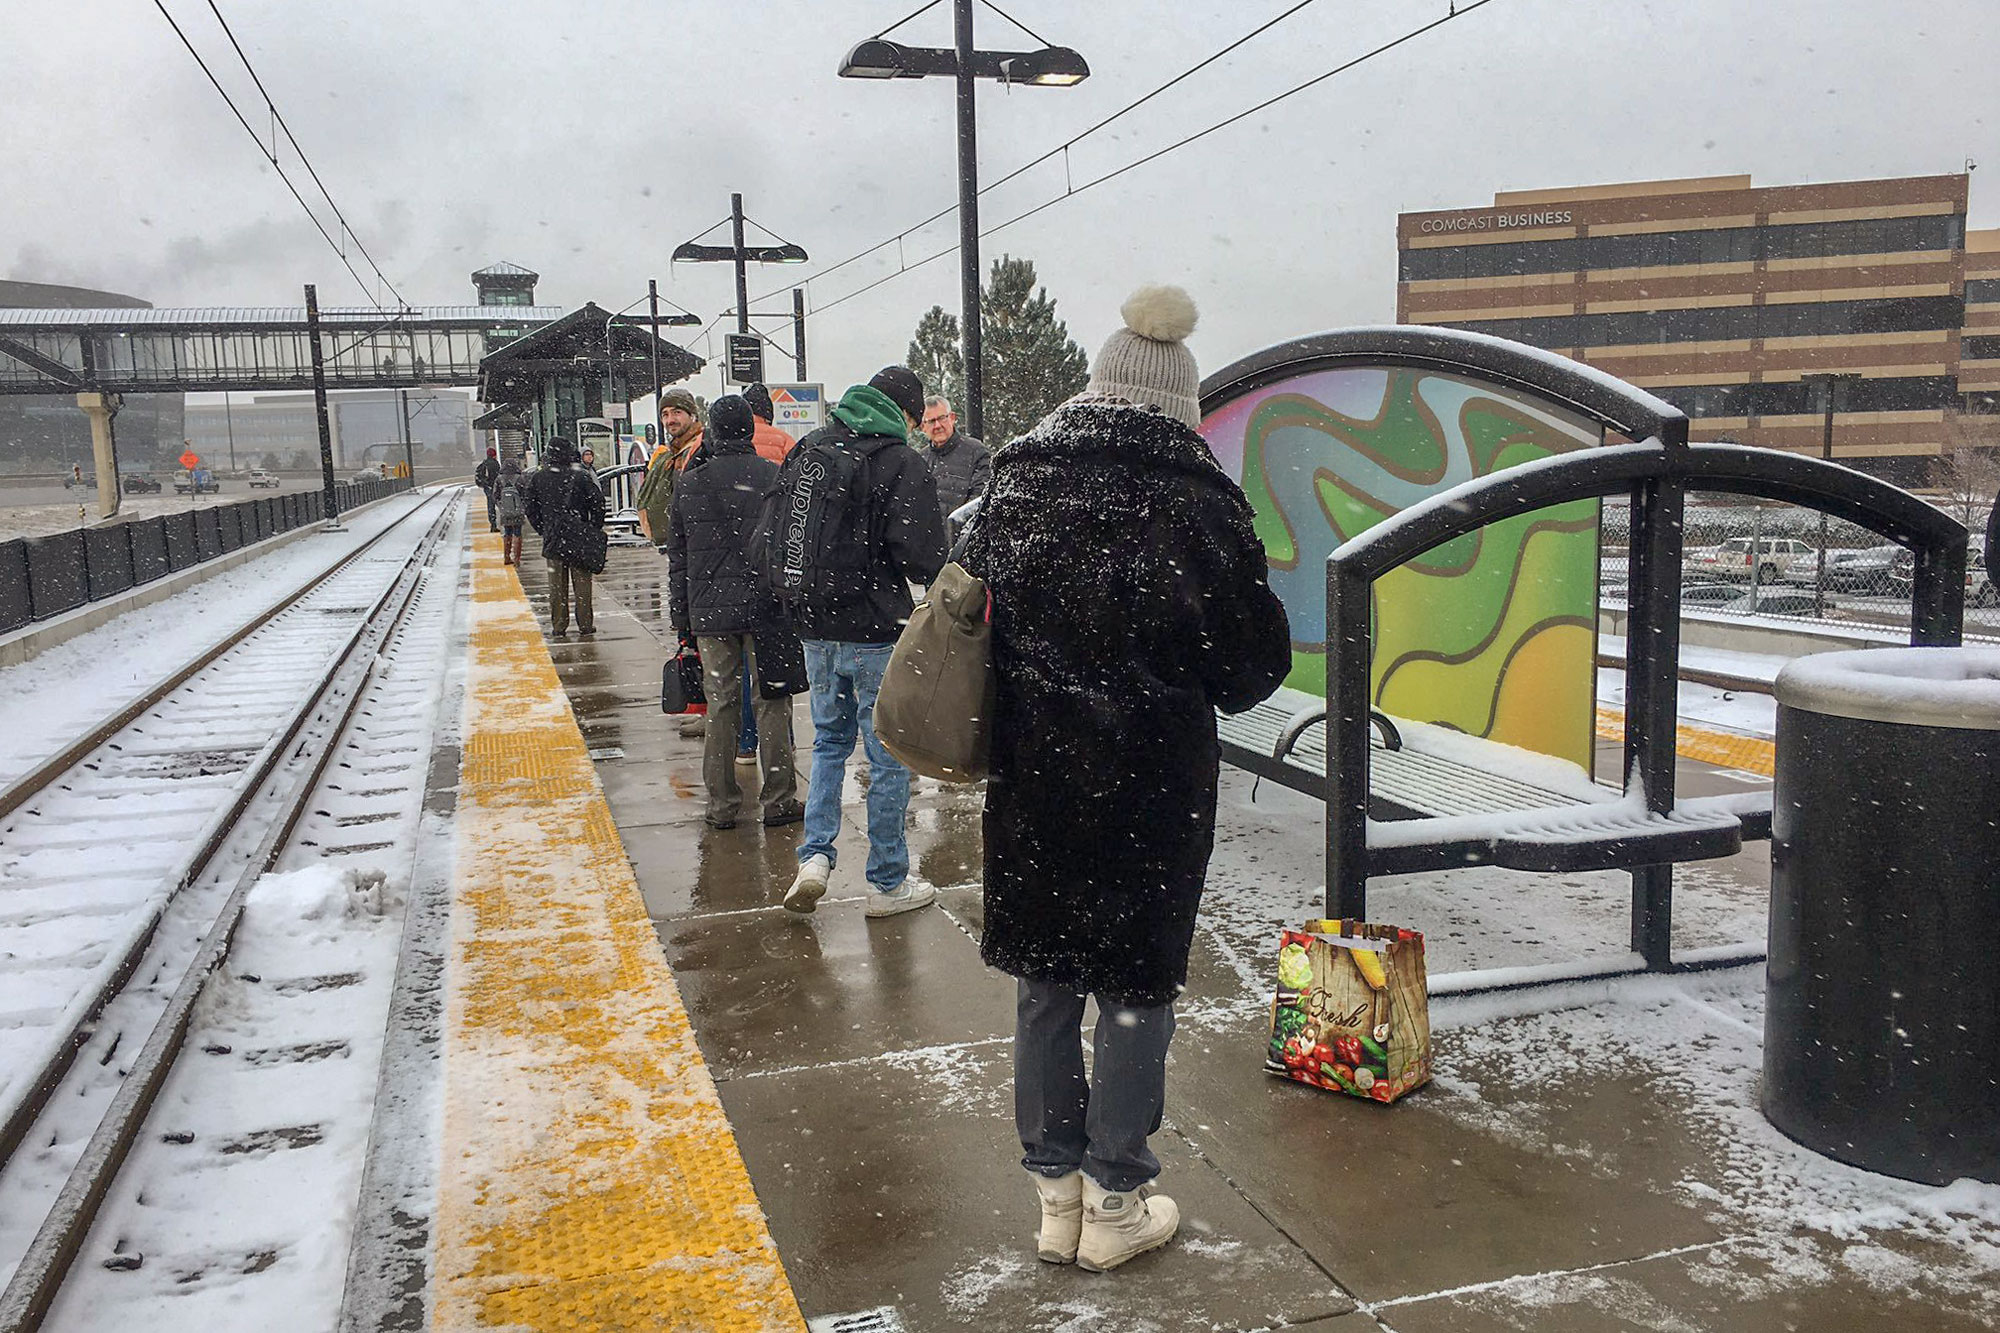 Commuters huddle agains the elements as they wait for a northbound train at the Dry Creek Station in Centennial, Colo., Nov. 11, 2019.